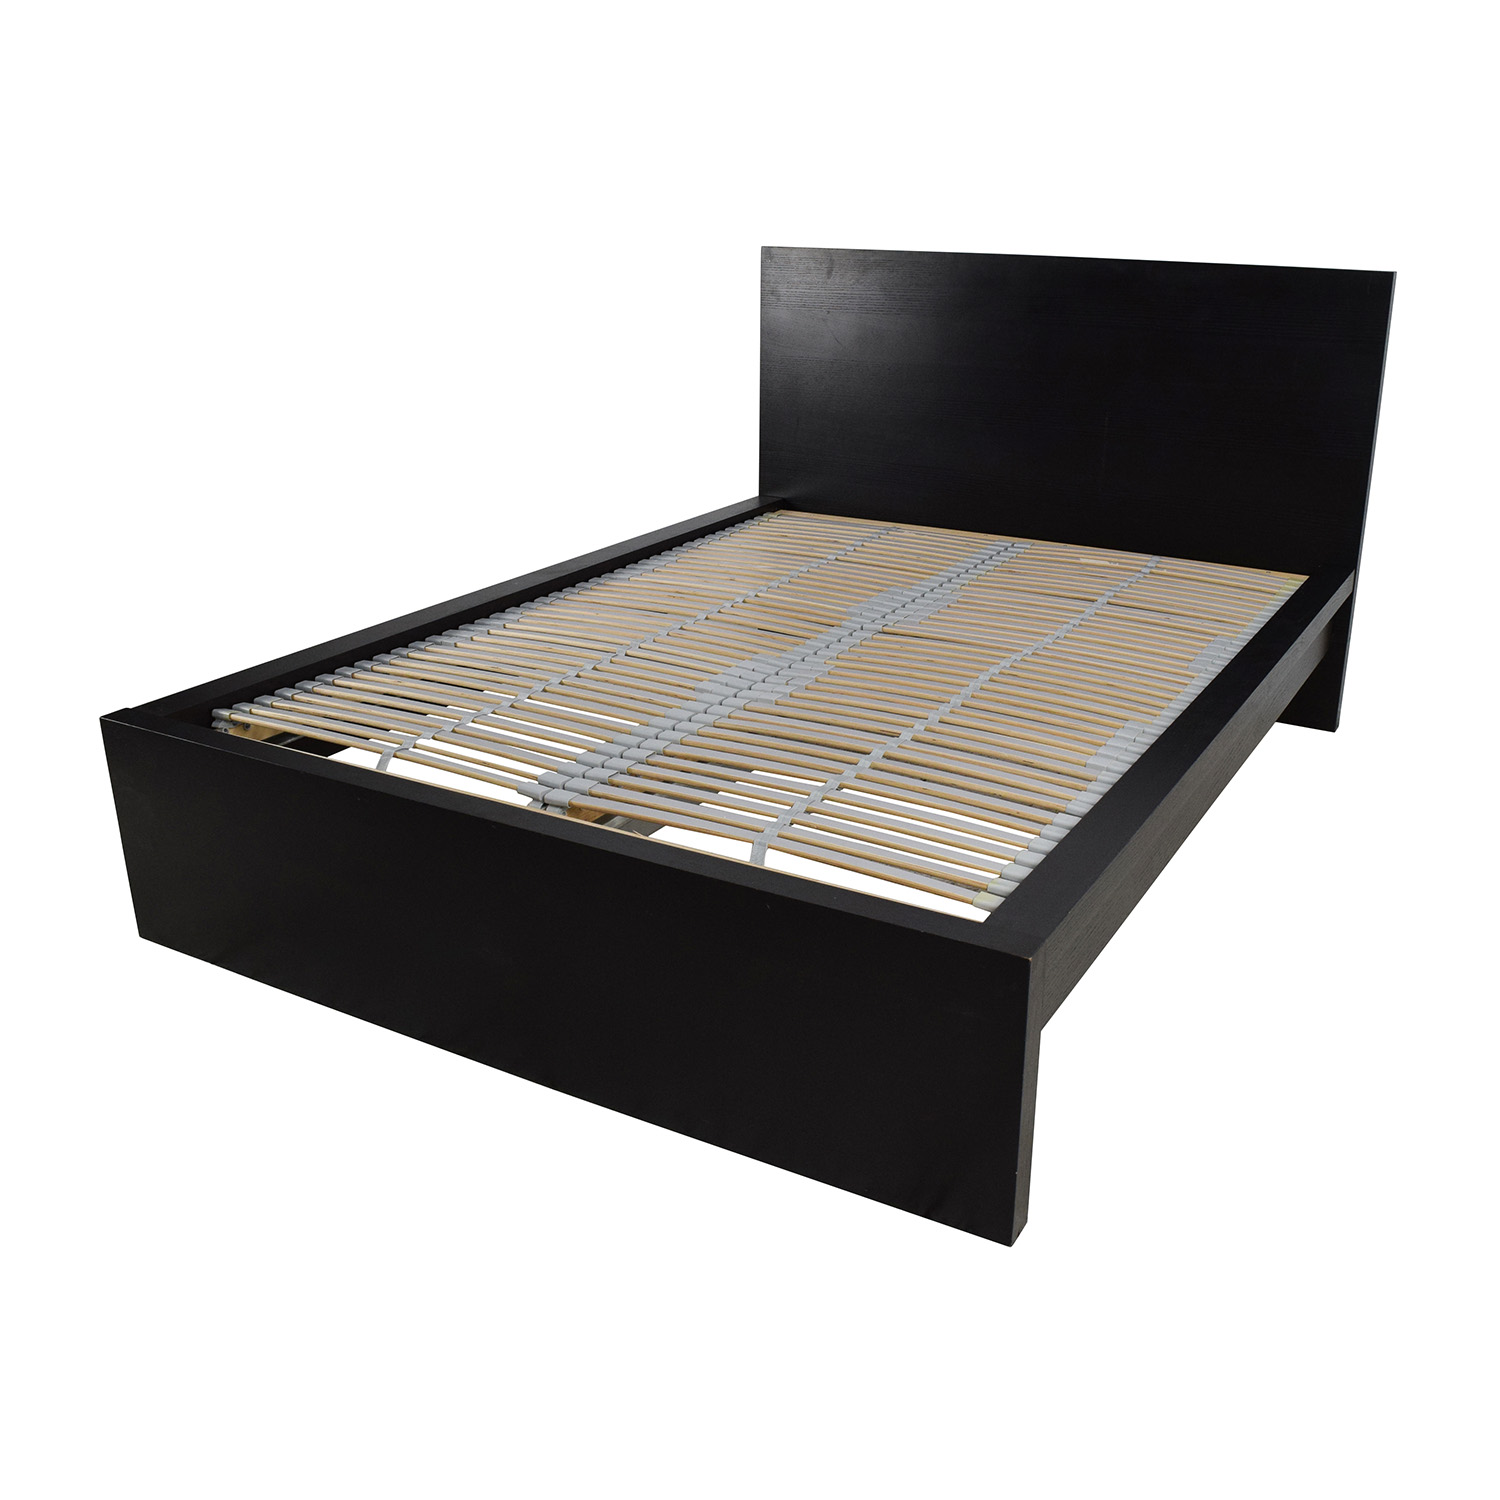 77 Off Ikea Ikea Full Bed Frame With Adjustable Slats